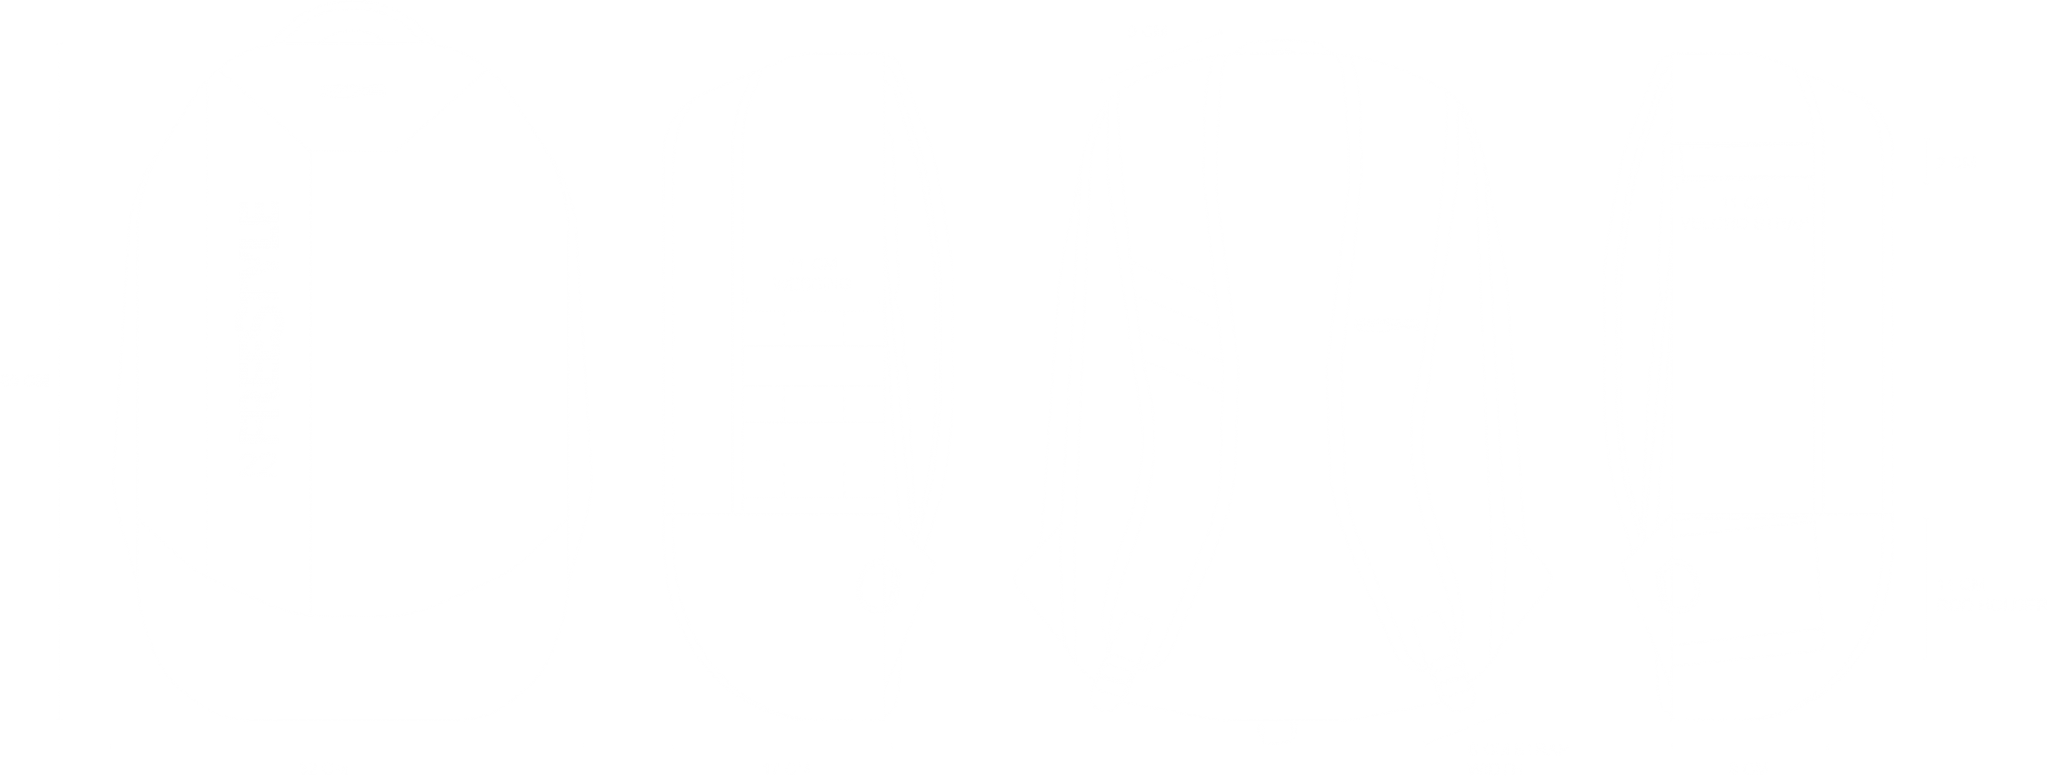 Technical Drawing - Backpack 22